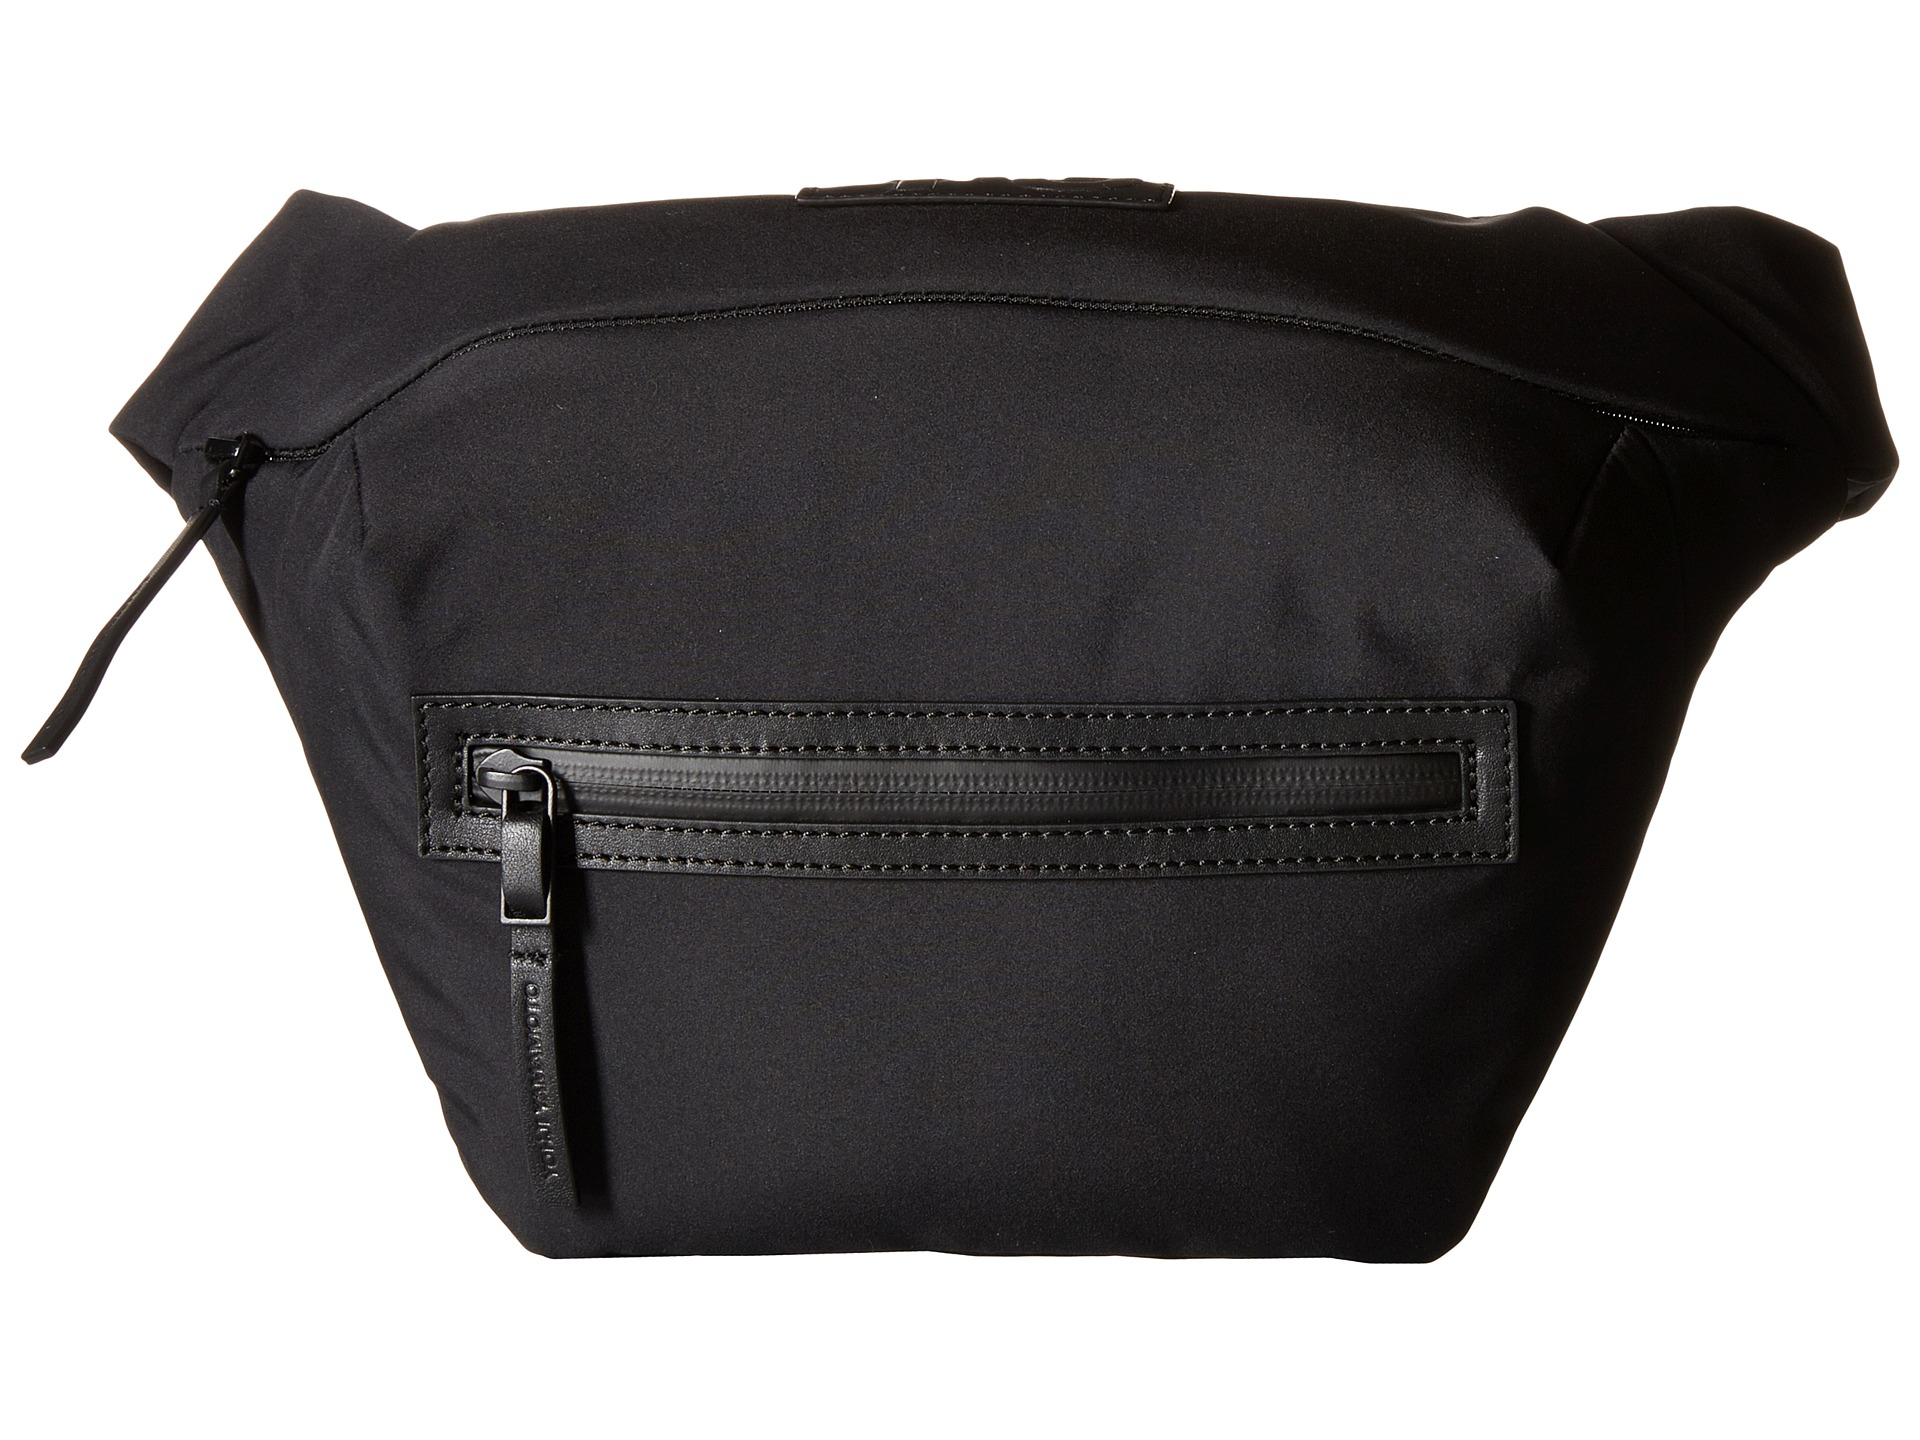 cfc06b9d2330 Lyst - Y-3 Qasa Fanny Pack in Black for Men